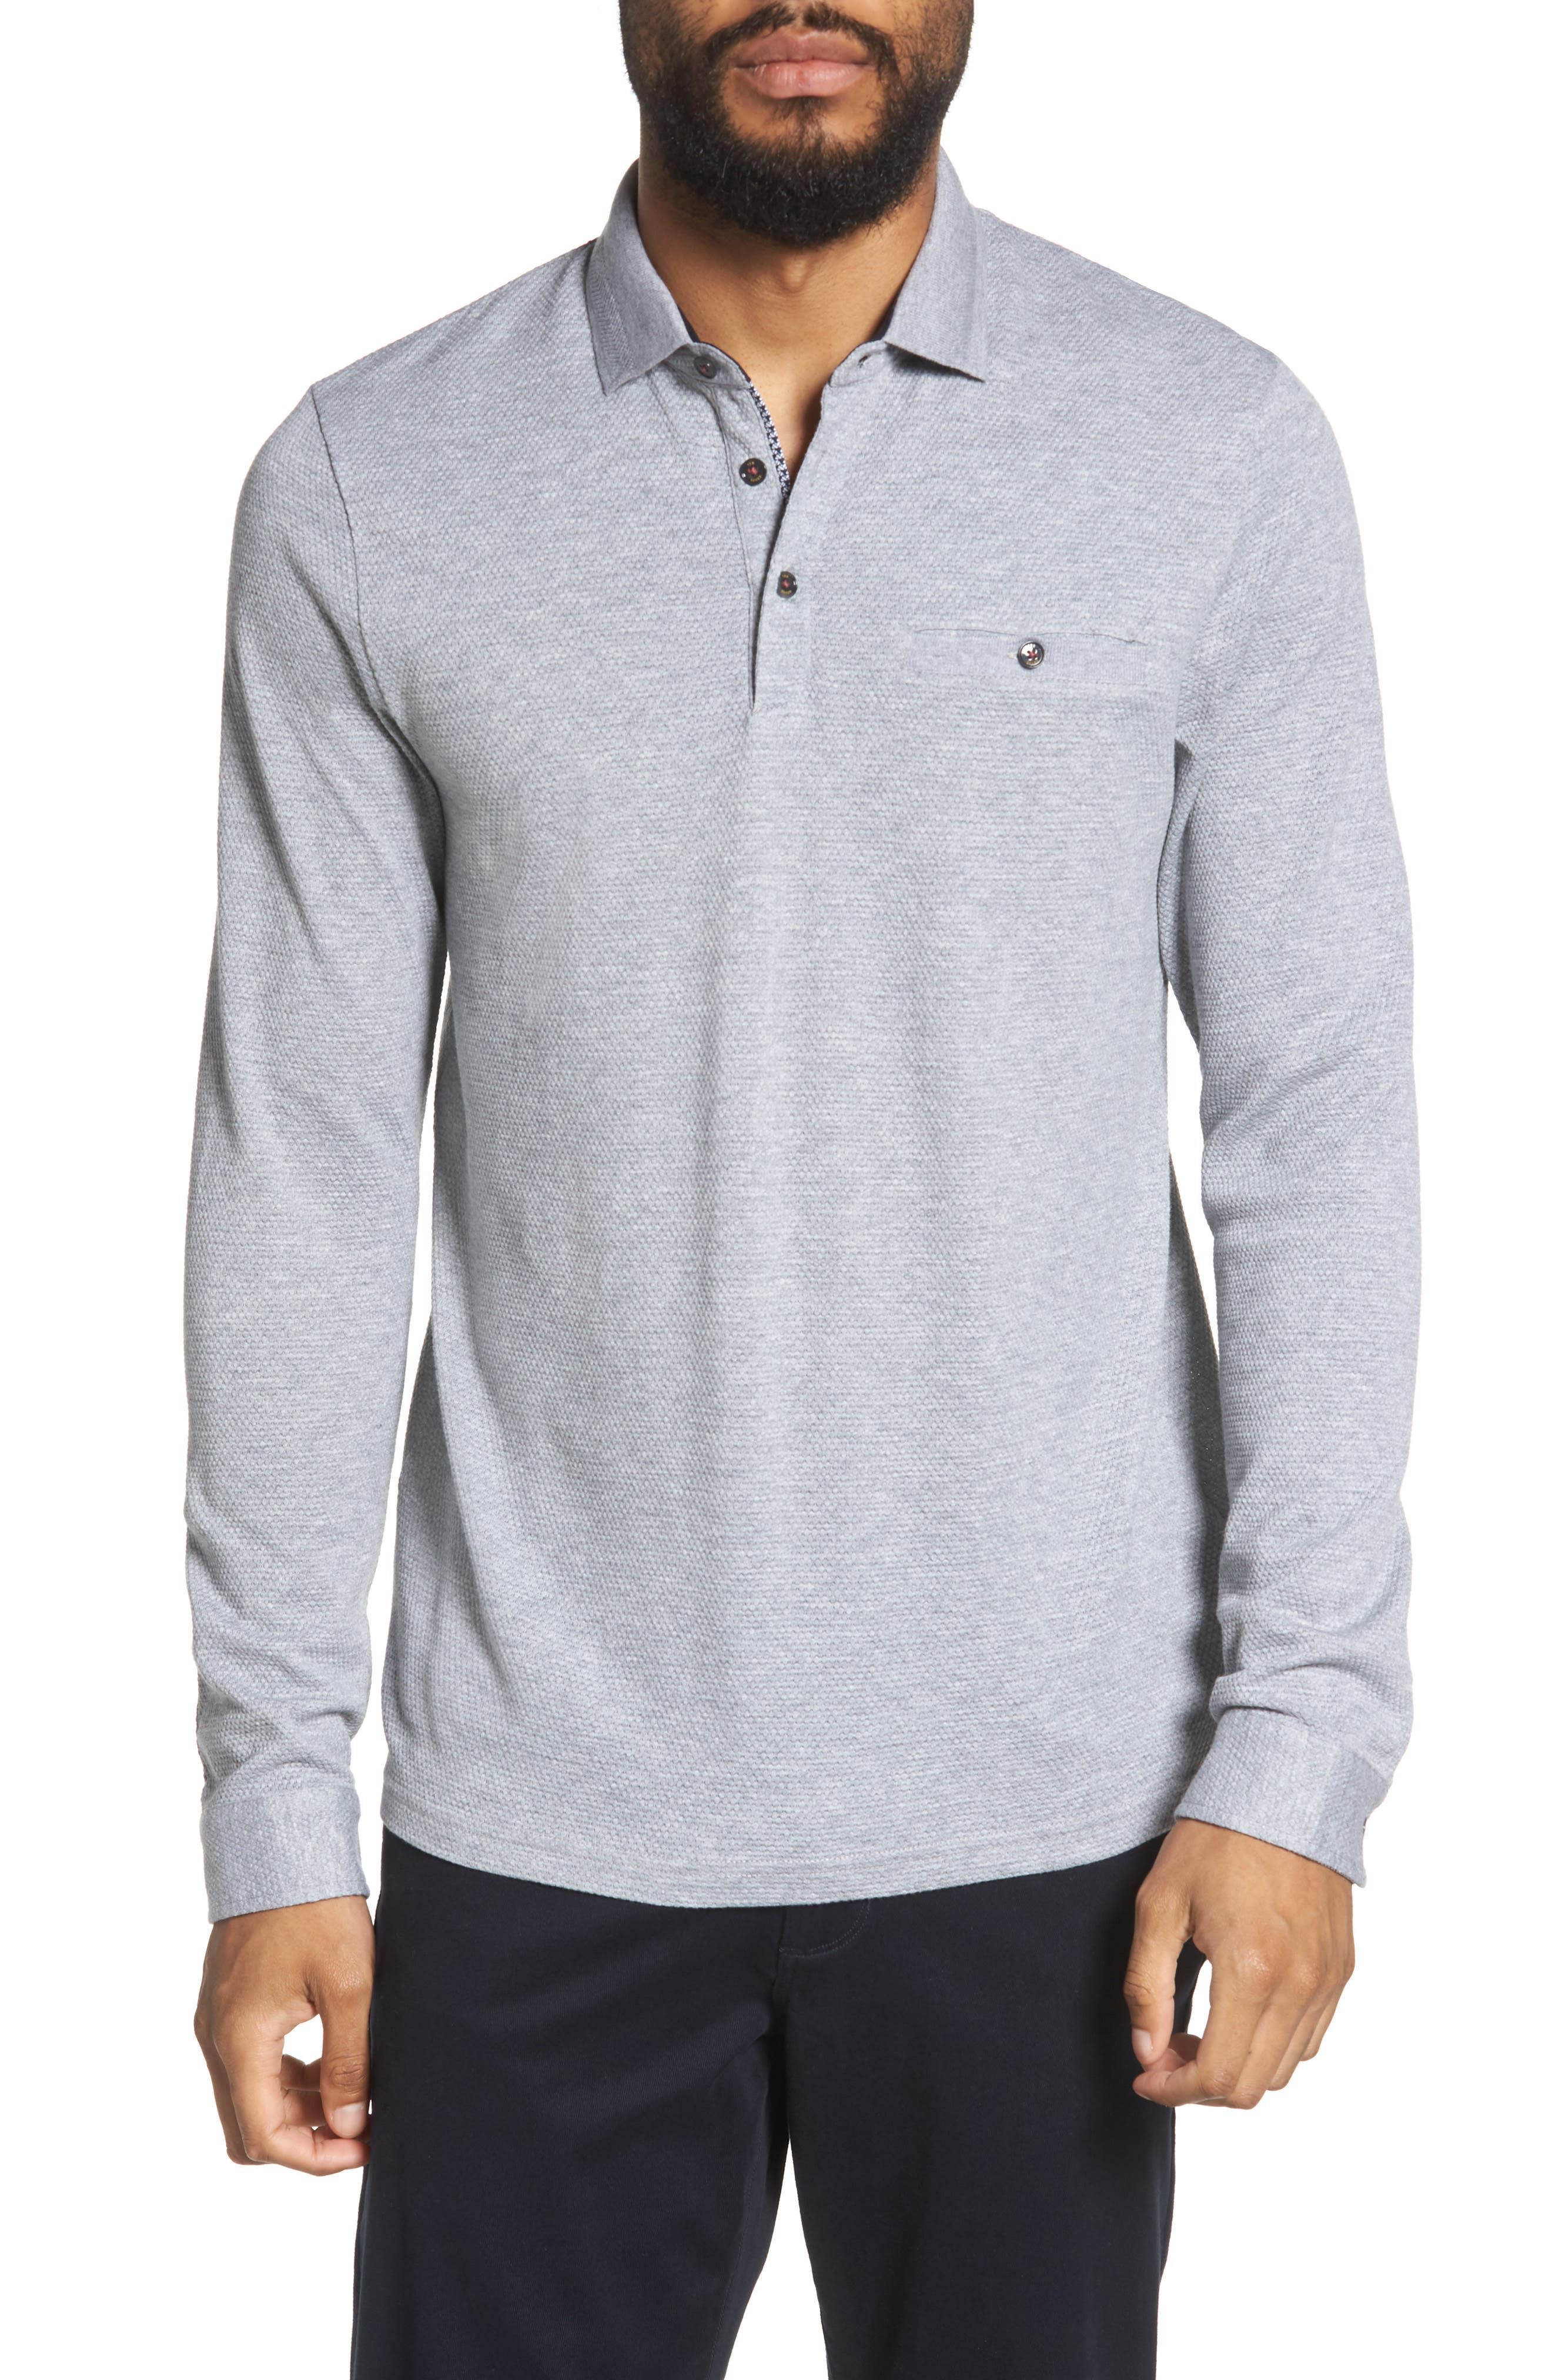 Scooby Trim Fit Long Sleeve Polo Shirt,                         Main,                         color, Grey Marl